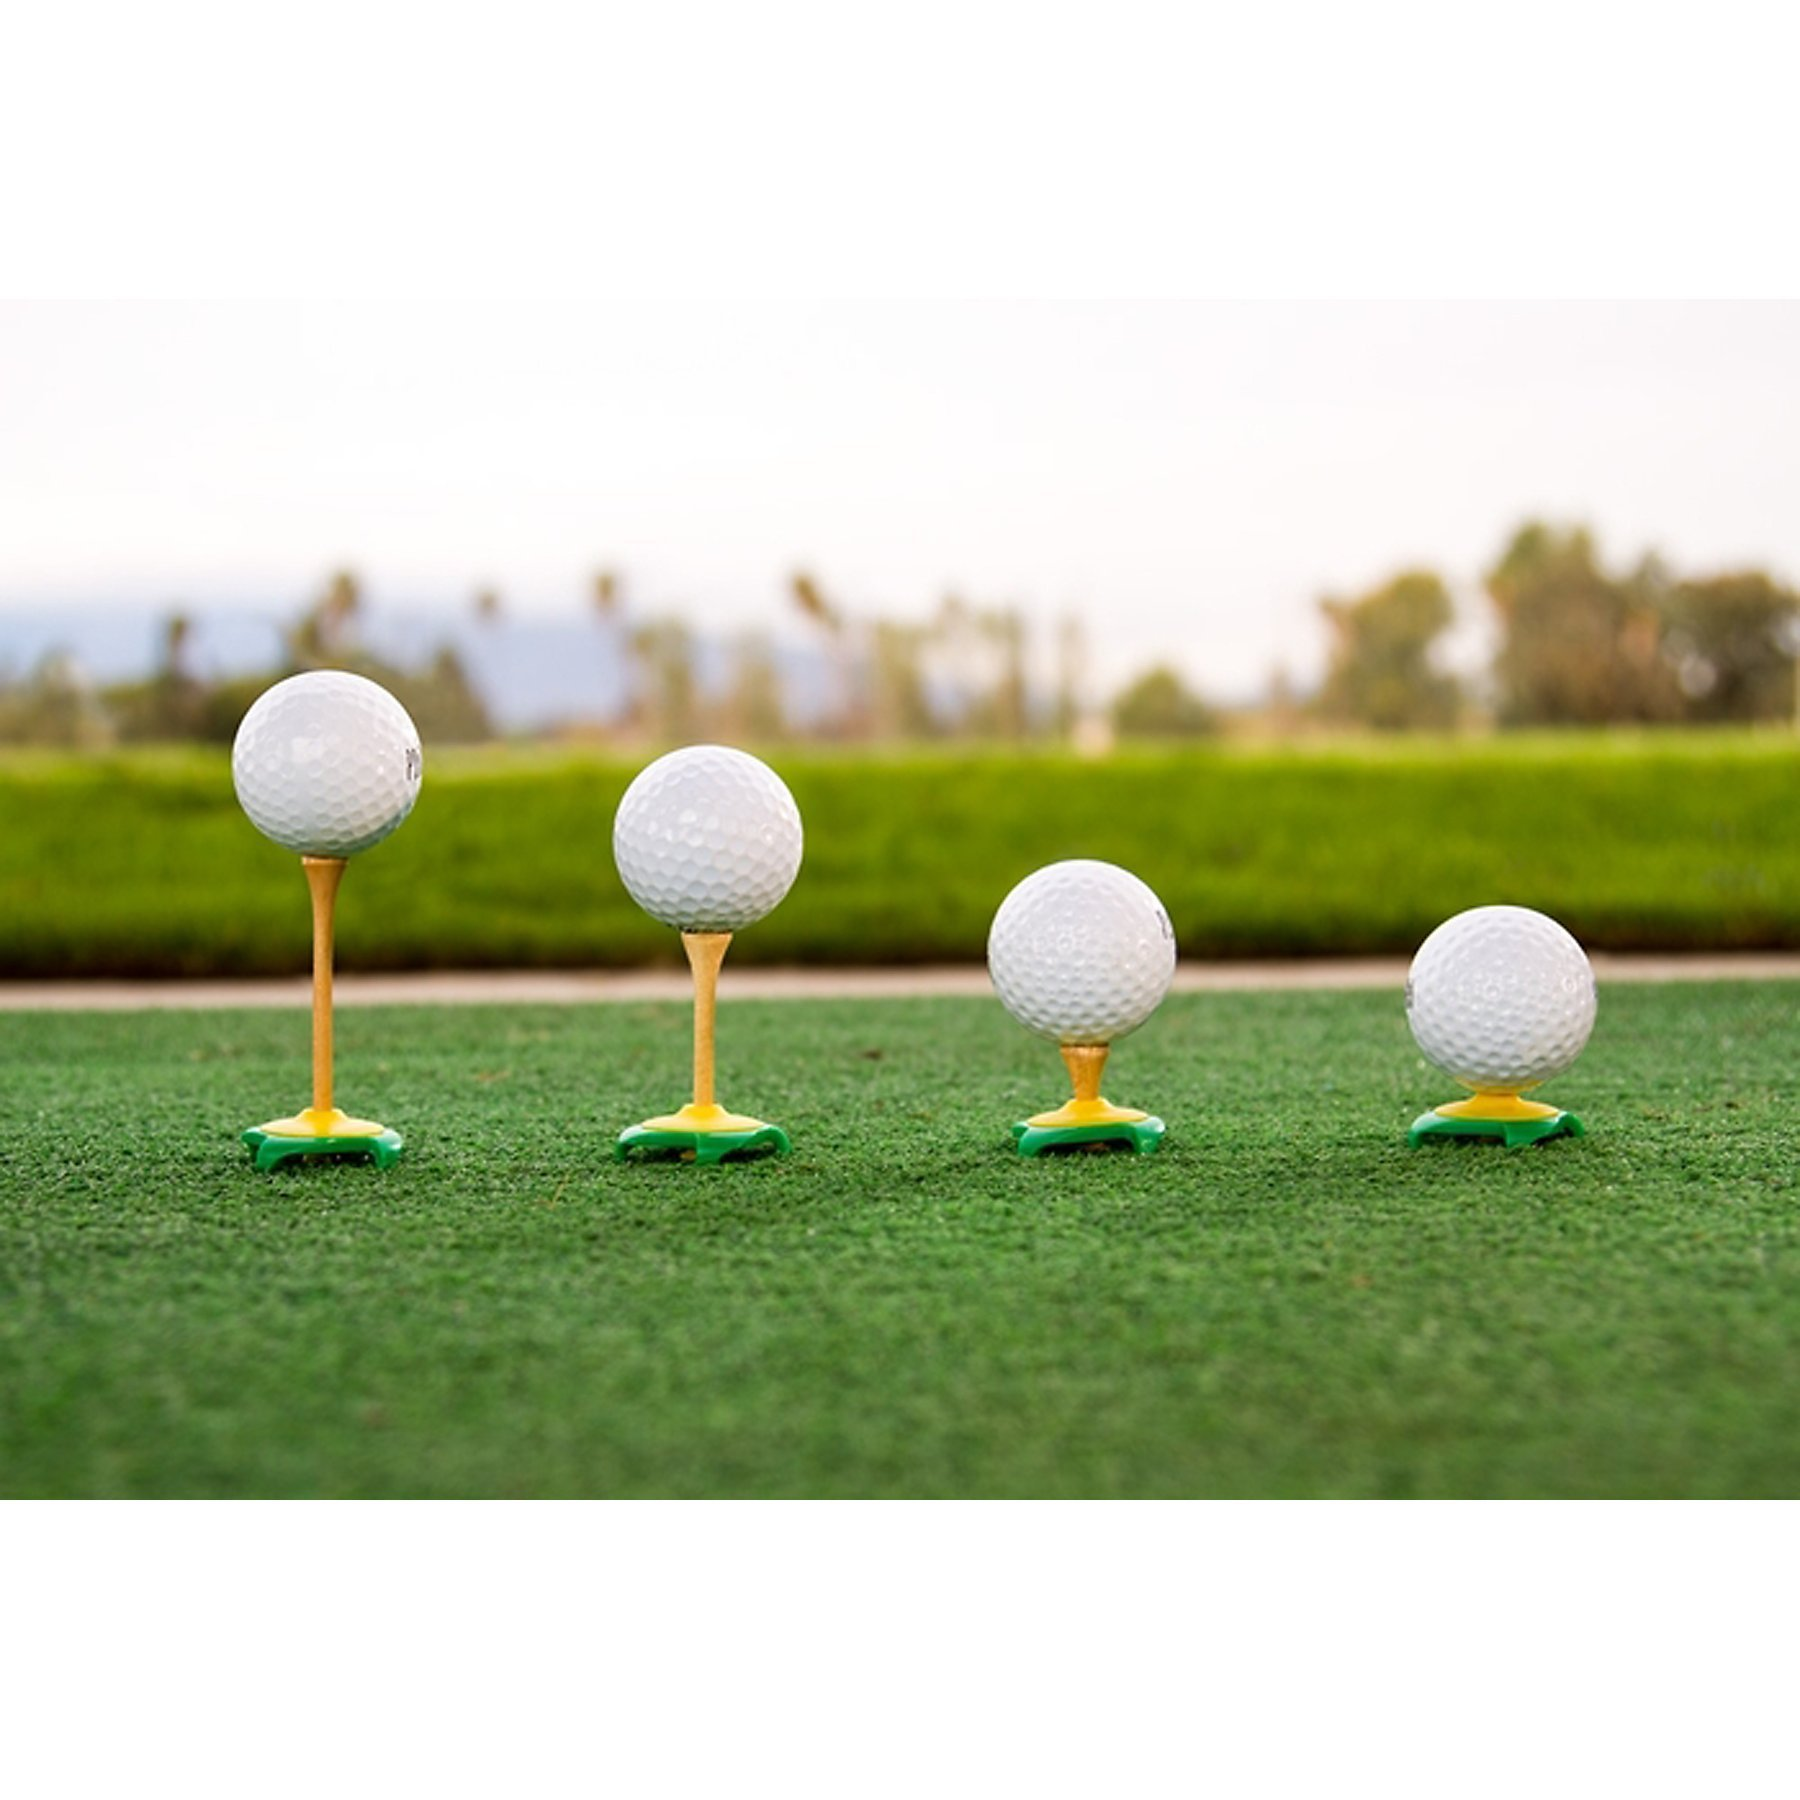 ProActive Sports Tee Claw Artificial Grass Mat Real Tee Holder & Alignment Training Aid by ProActive Sports (Image #4)